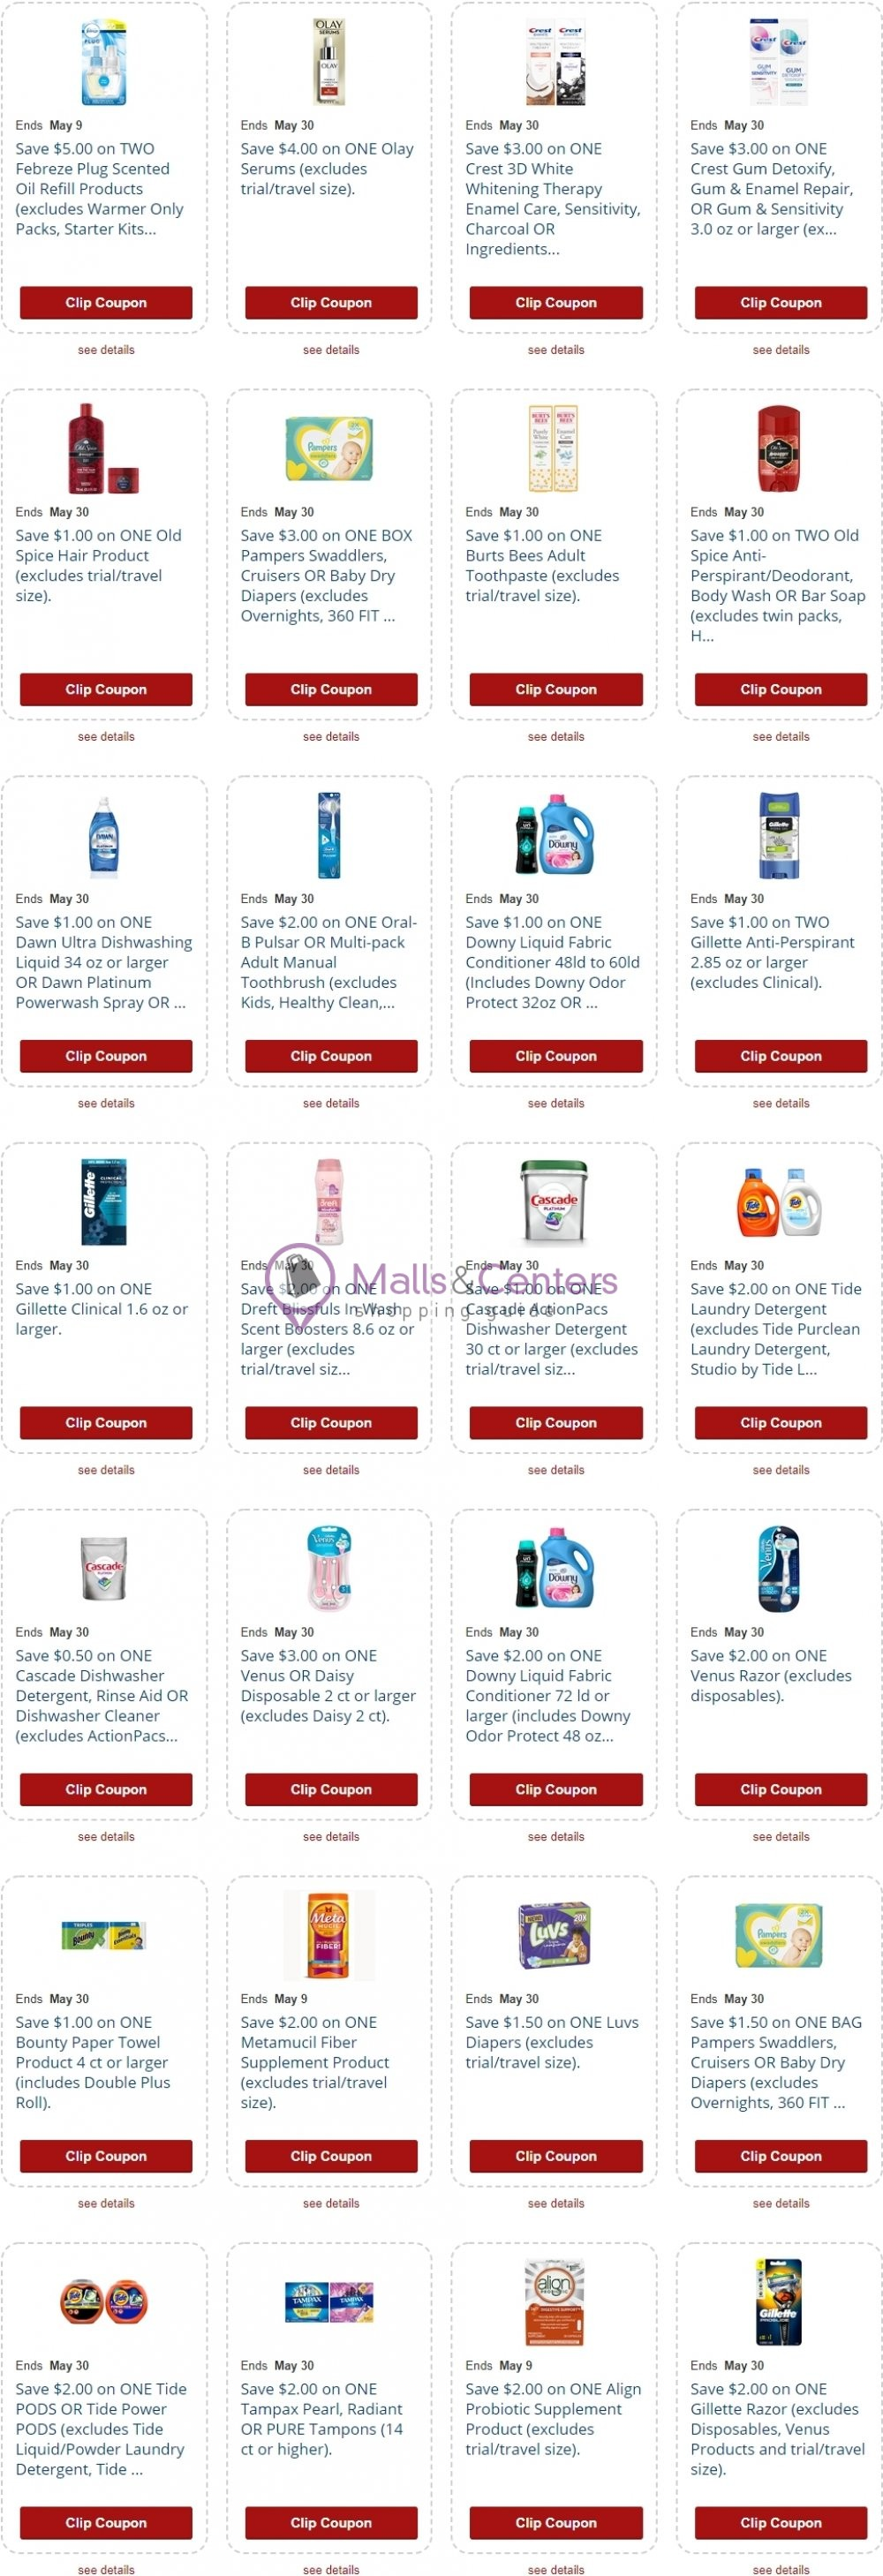 weekly ads Kmart - page 1 - mallscenters.com